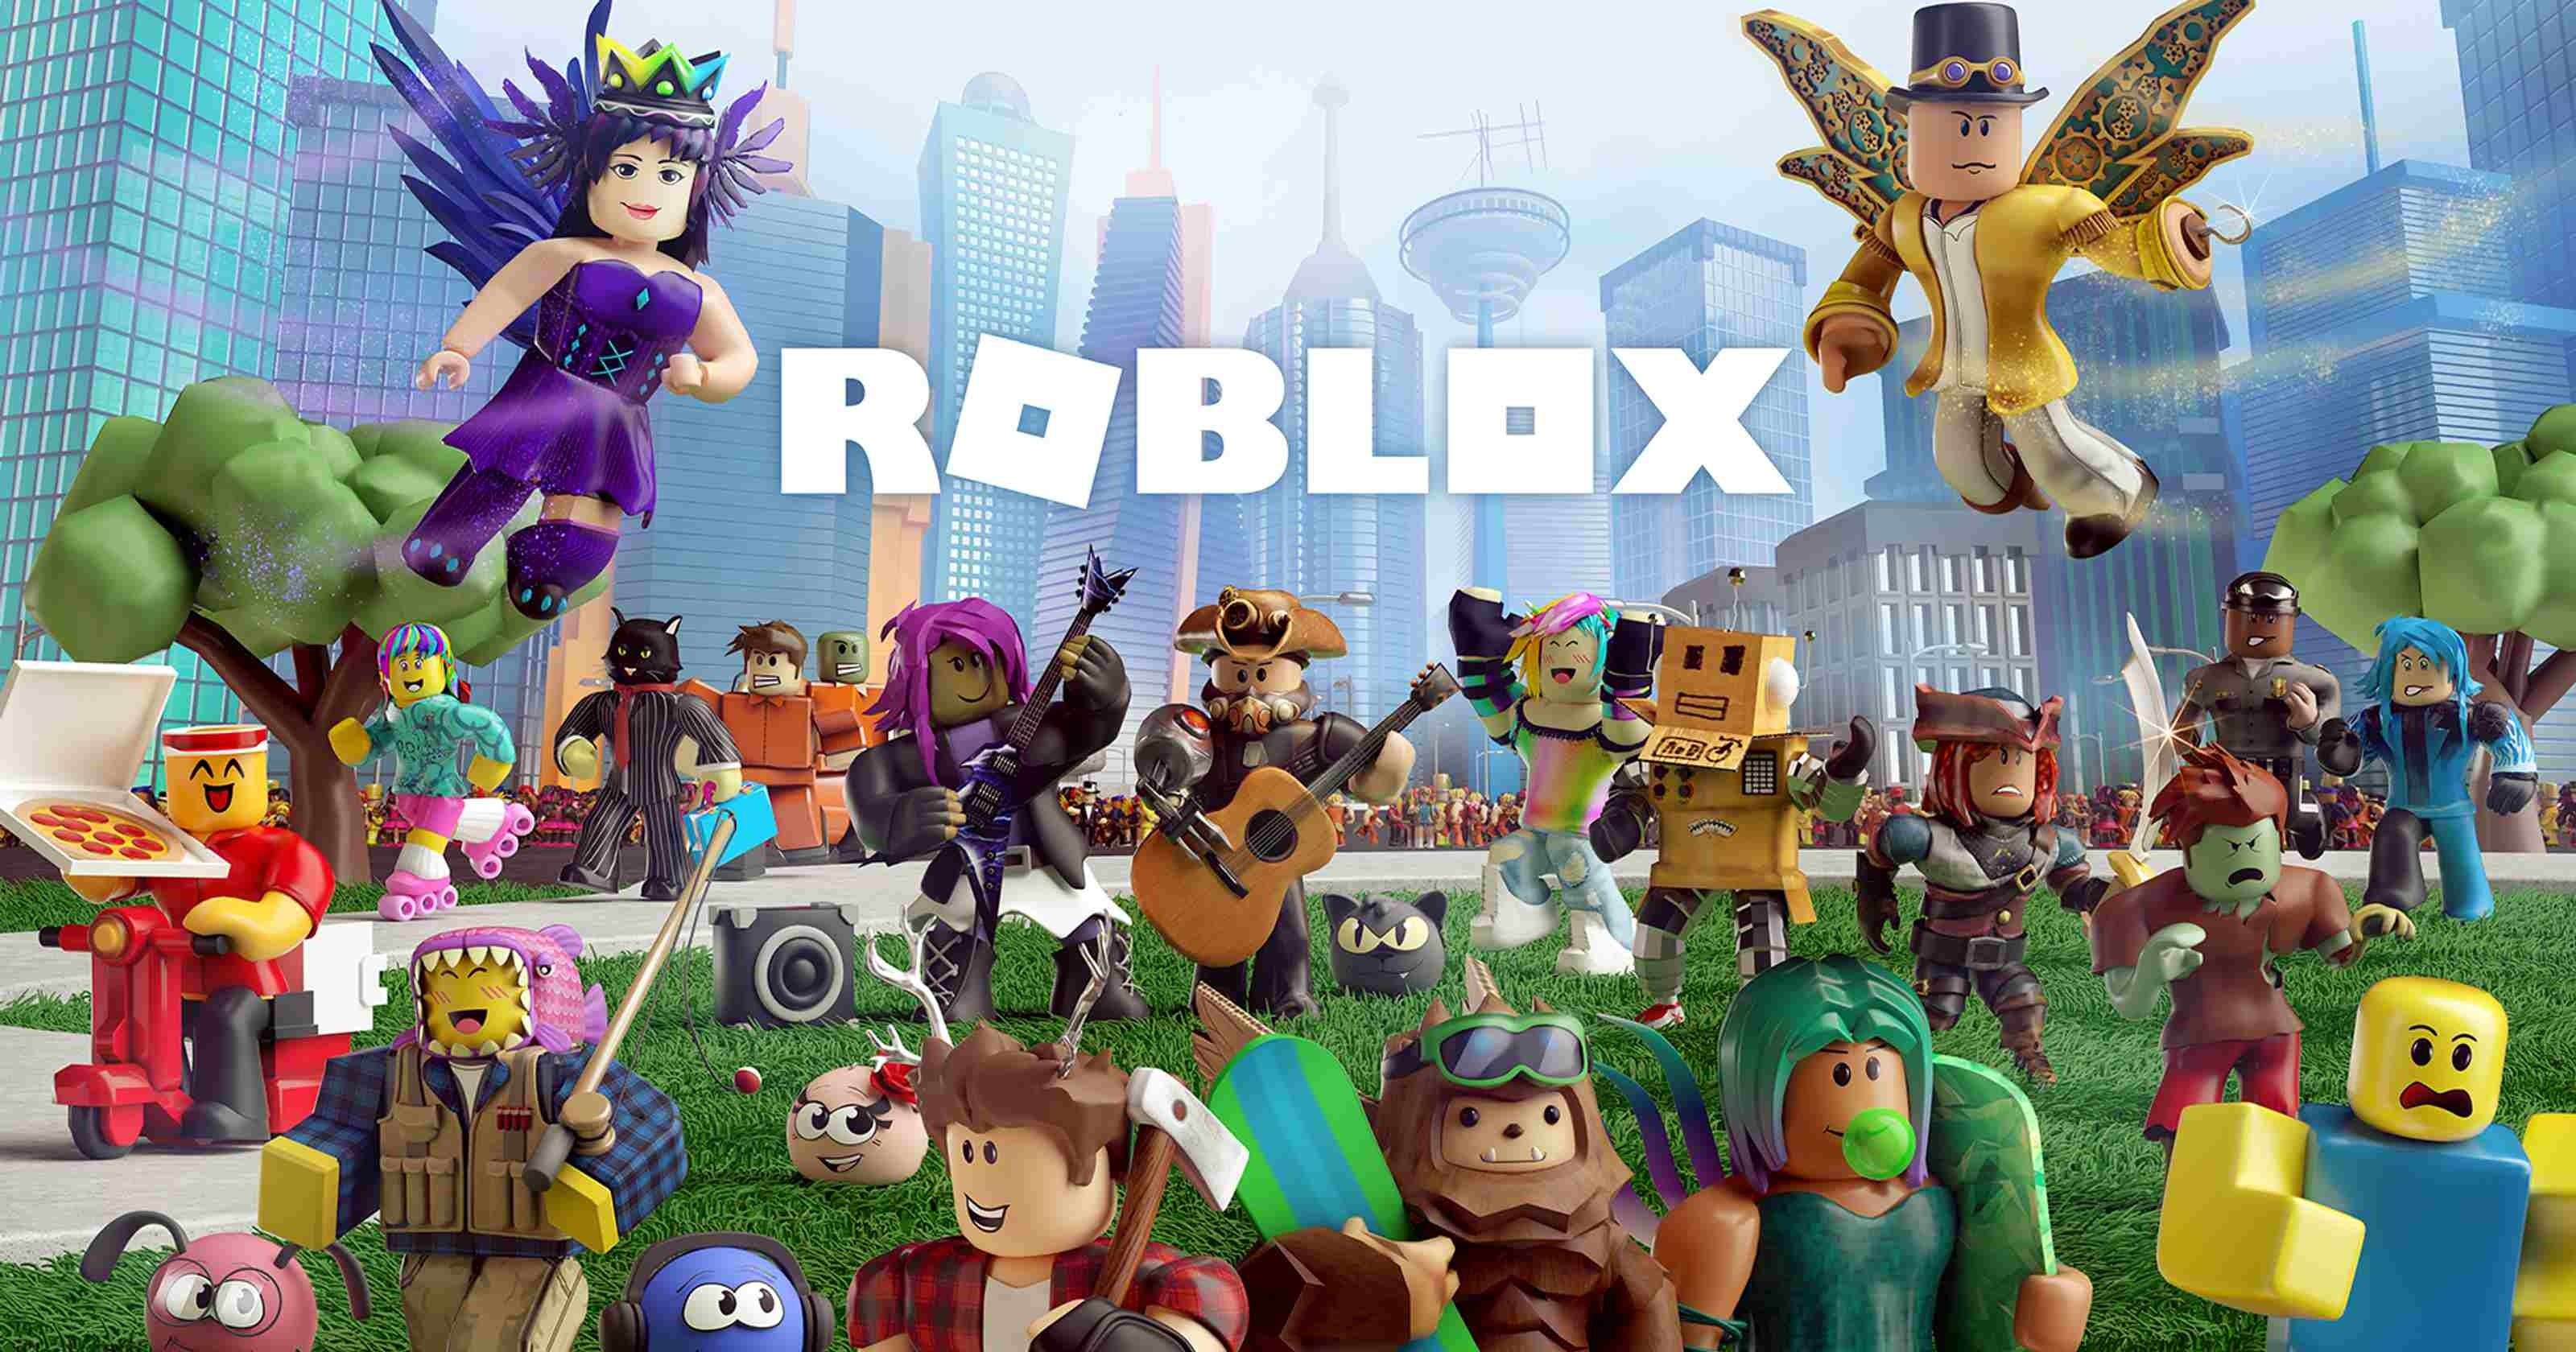 Cute Aesthetic Roblox Wallpapers